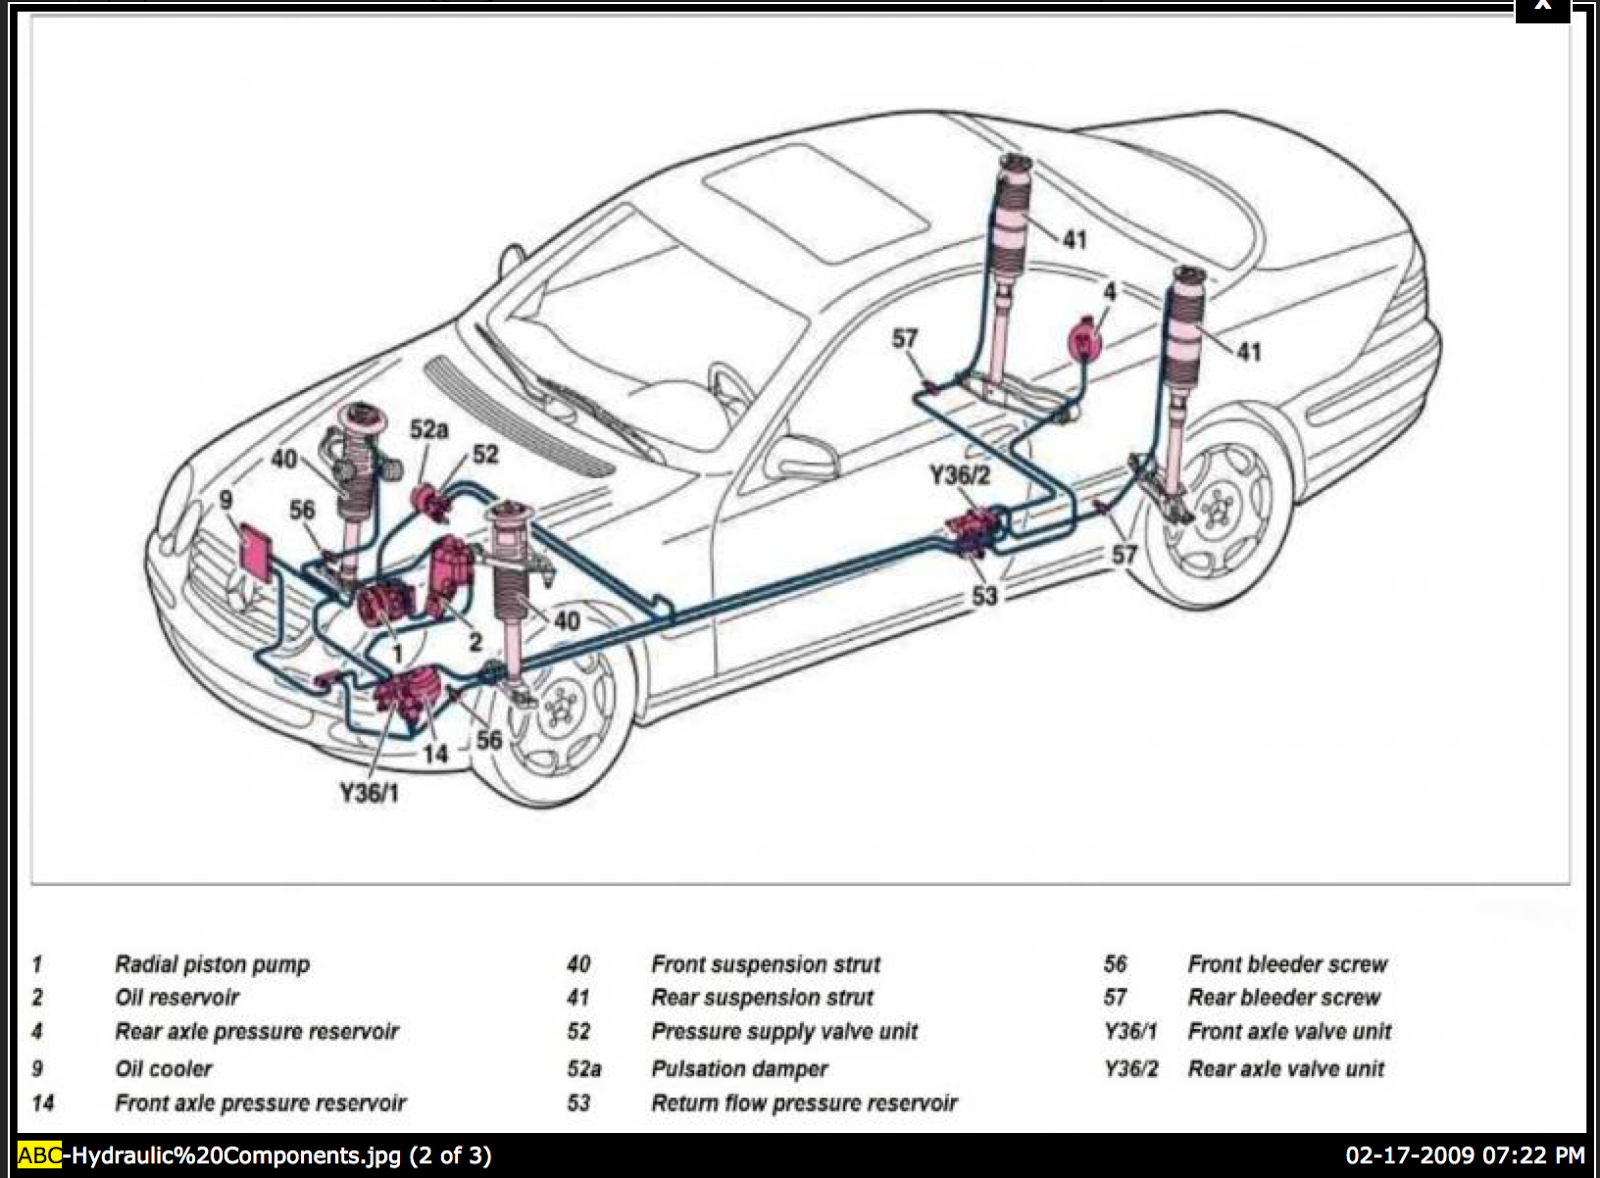 Mercedes Benz Abc System Troubleshooting Guide